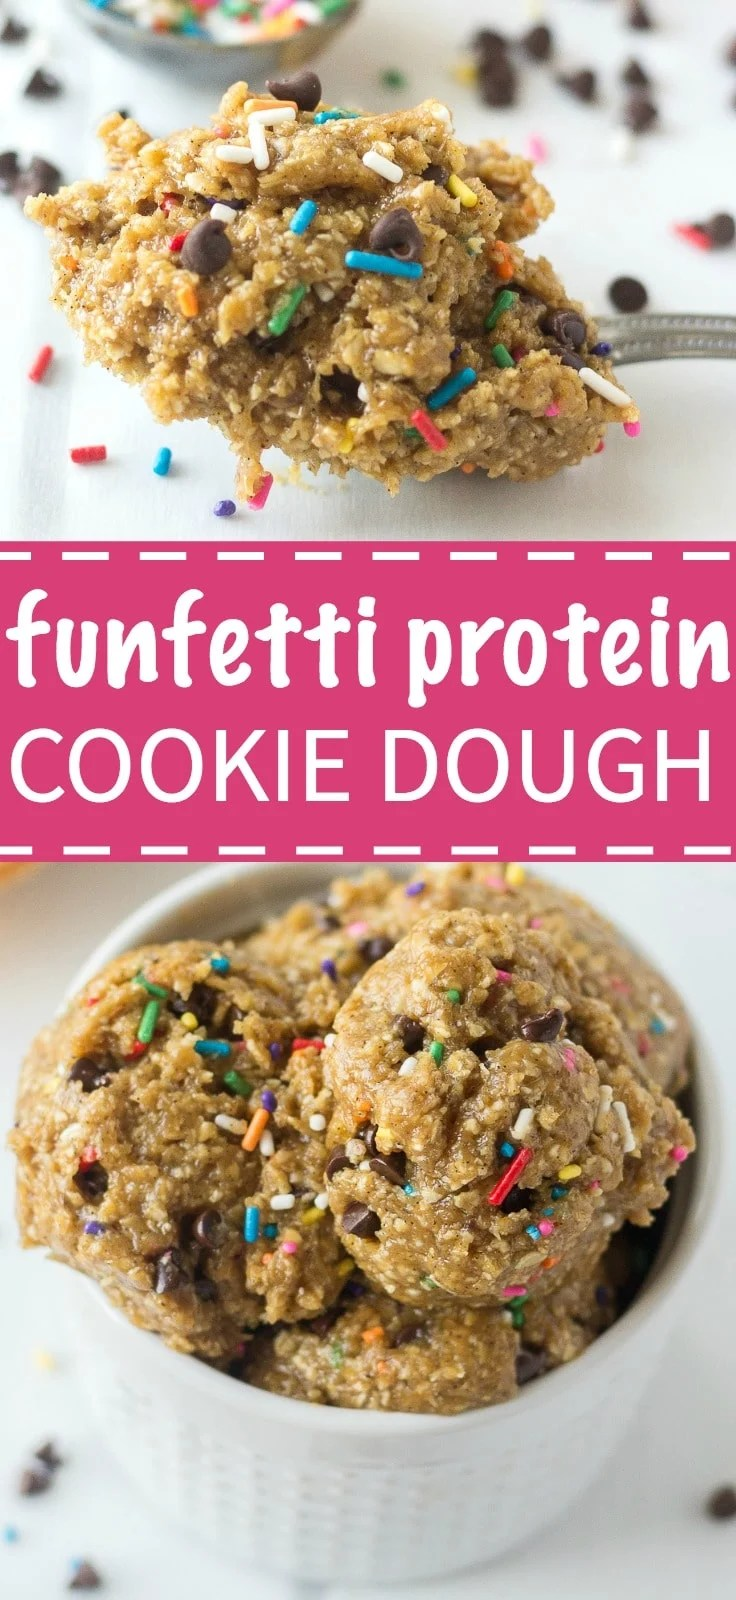 This healthy funfetti protein cookie dough is an easy snack recipe to fuel you up and keep you full. This healthy recipe is made with raw, natural ingredients and filled with flavor and protein.